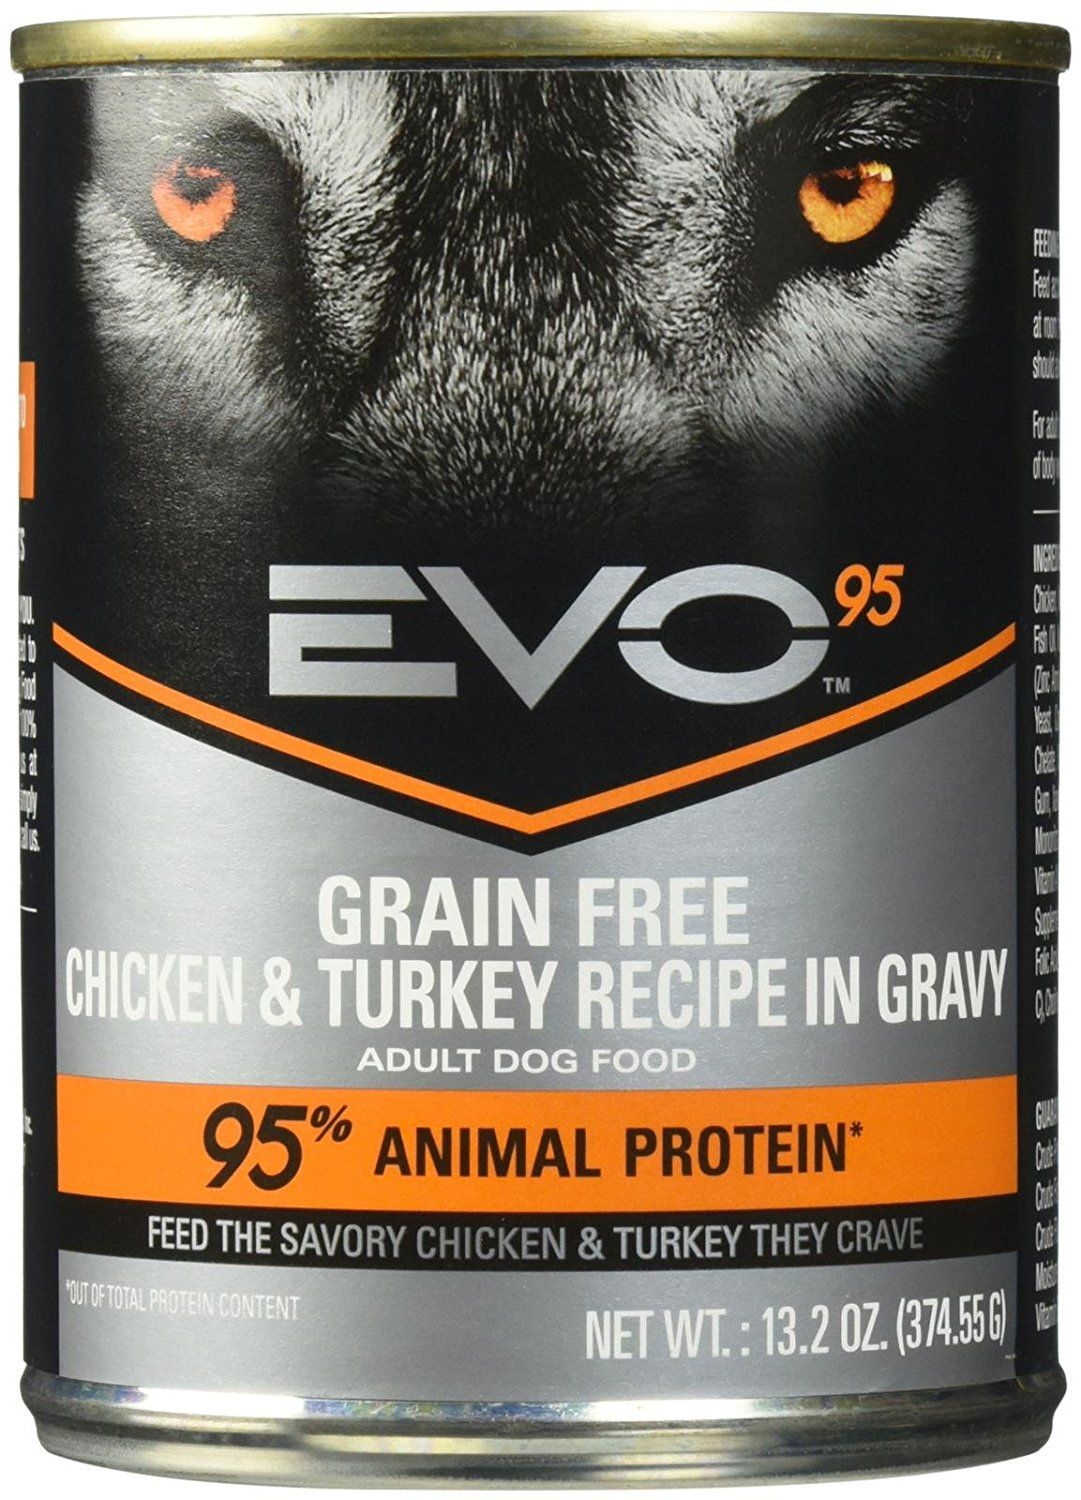 Evo Canned Dog Food Chicken And Turkey 13 2 Oz 12 Ct Wow I Love This Check It Out Now This Is A Dog Food Recipes Dry Dog Food Grain Free Cat Food